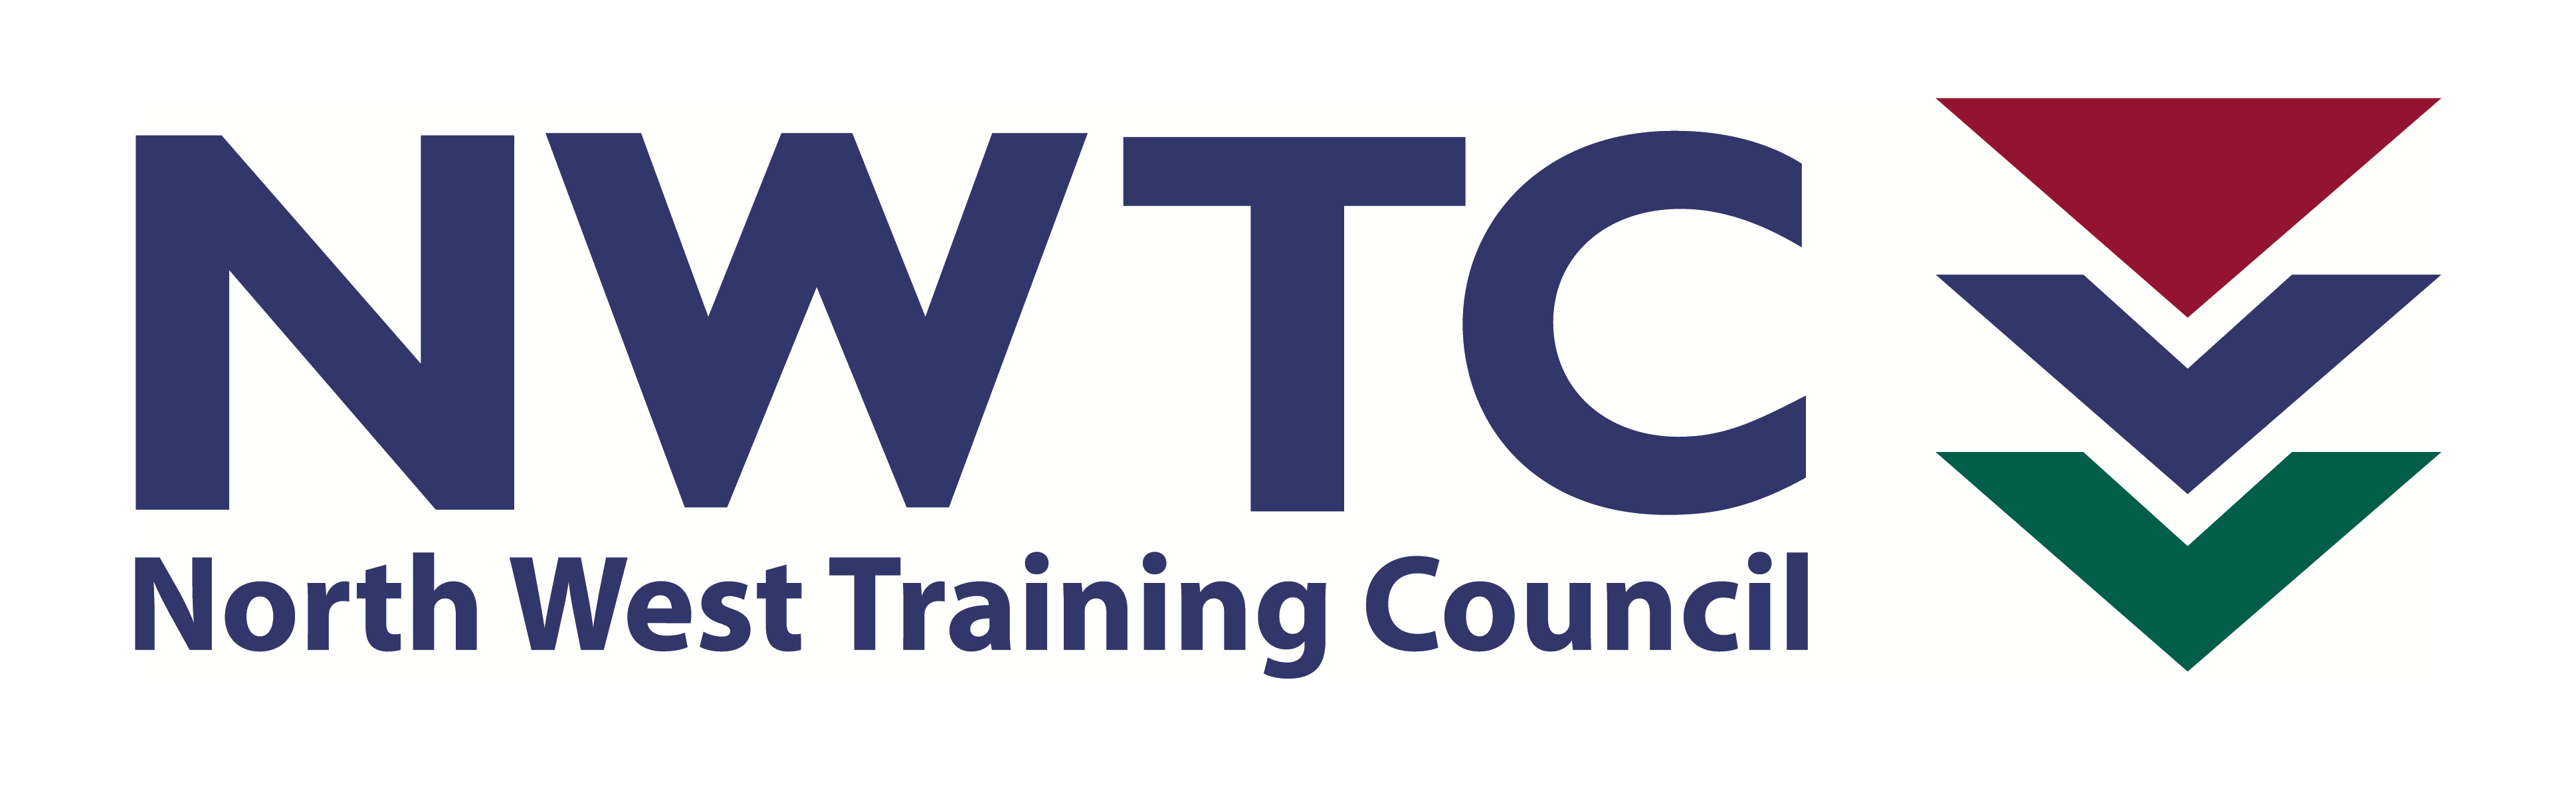 North West Training Council